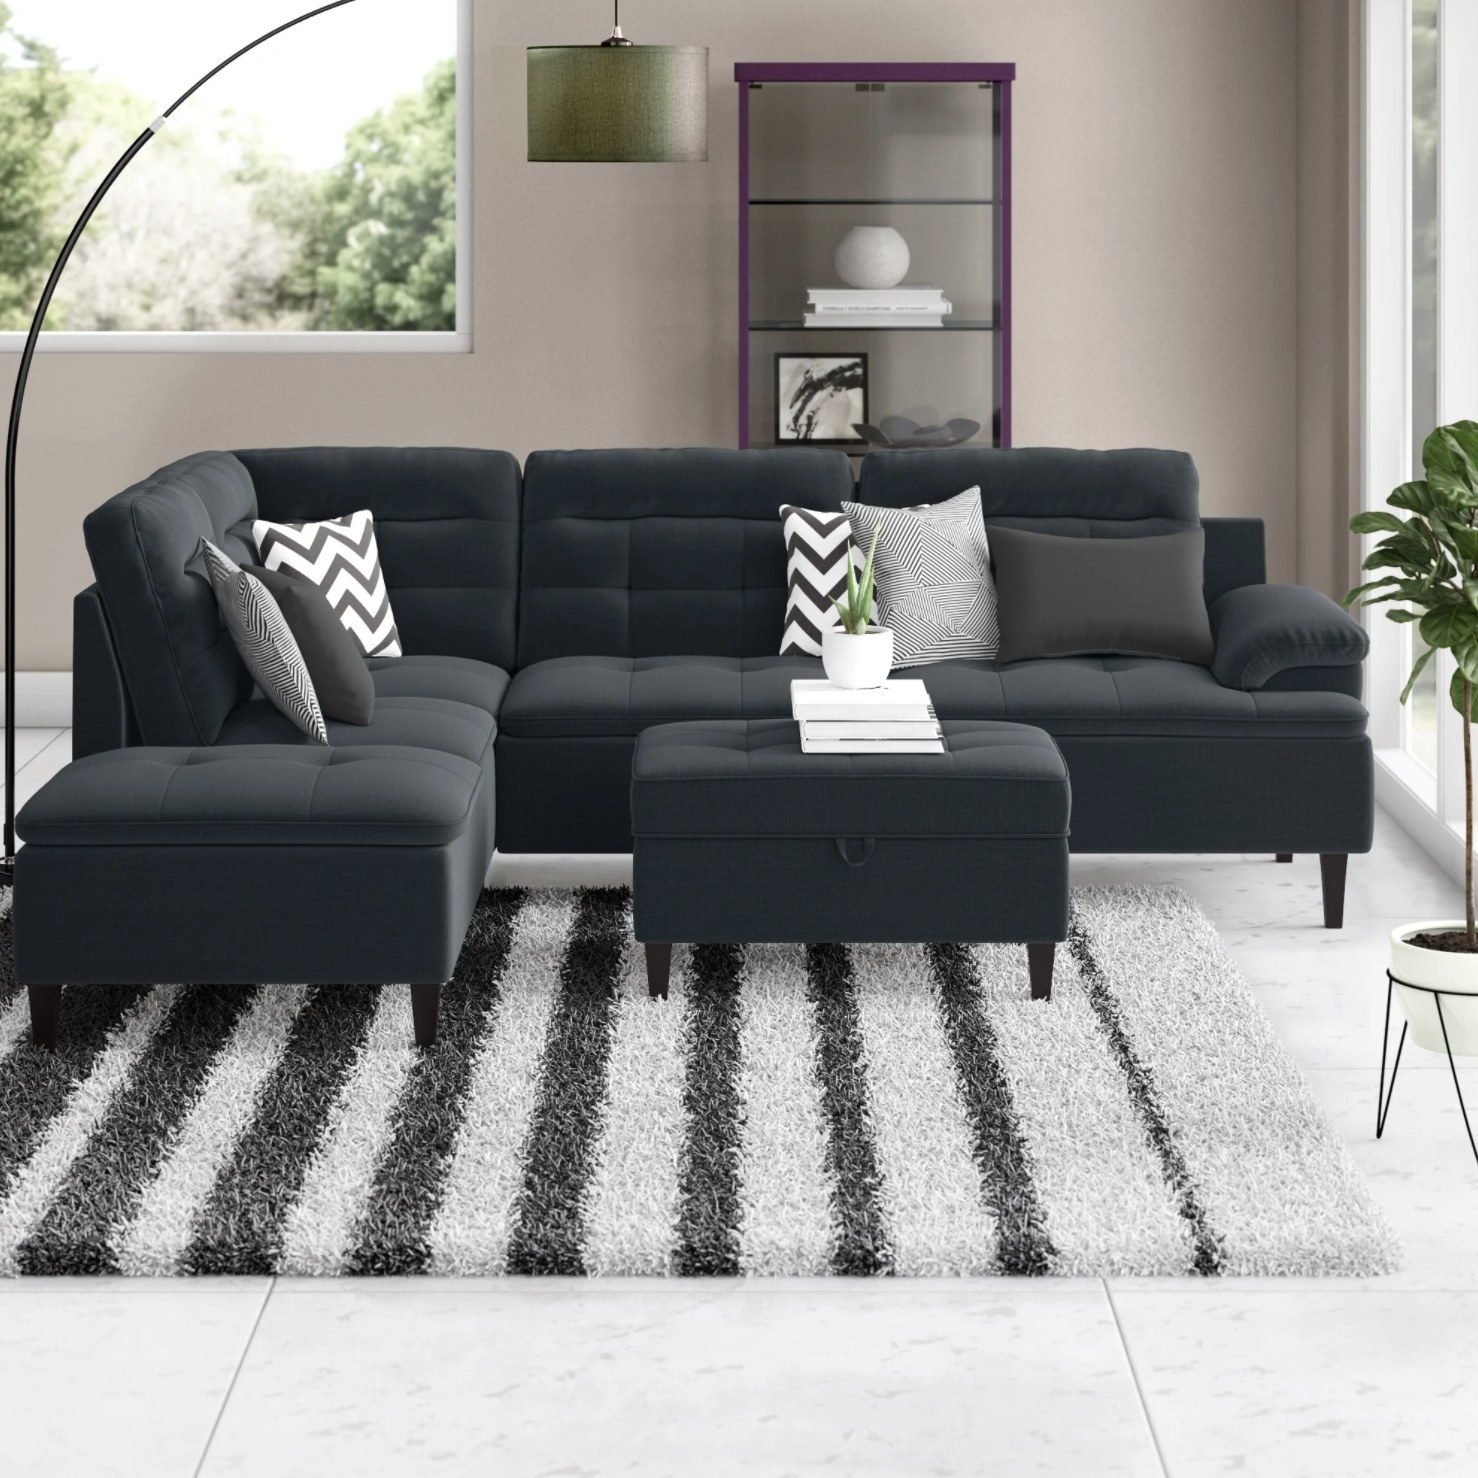 The sectional in black